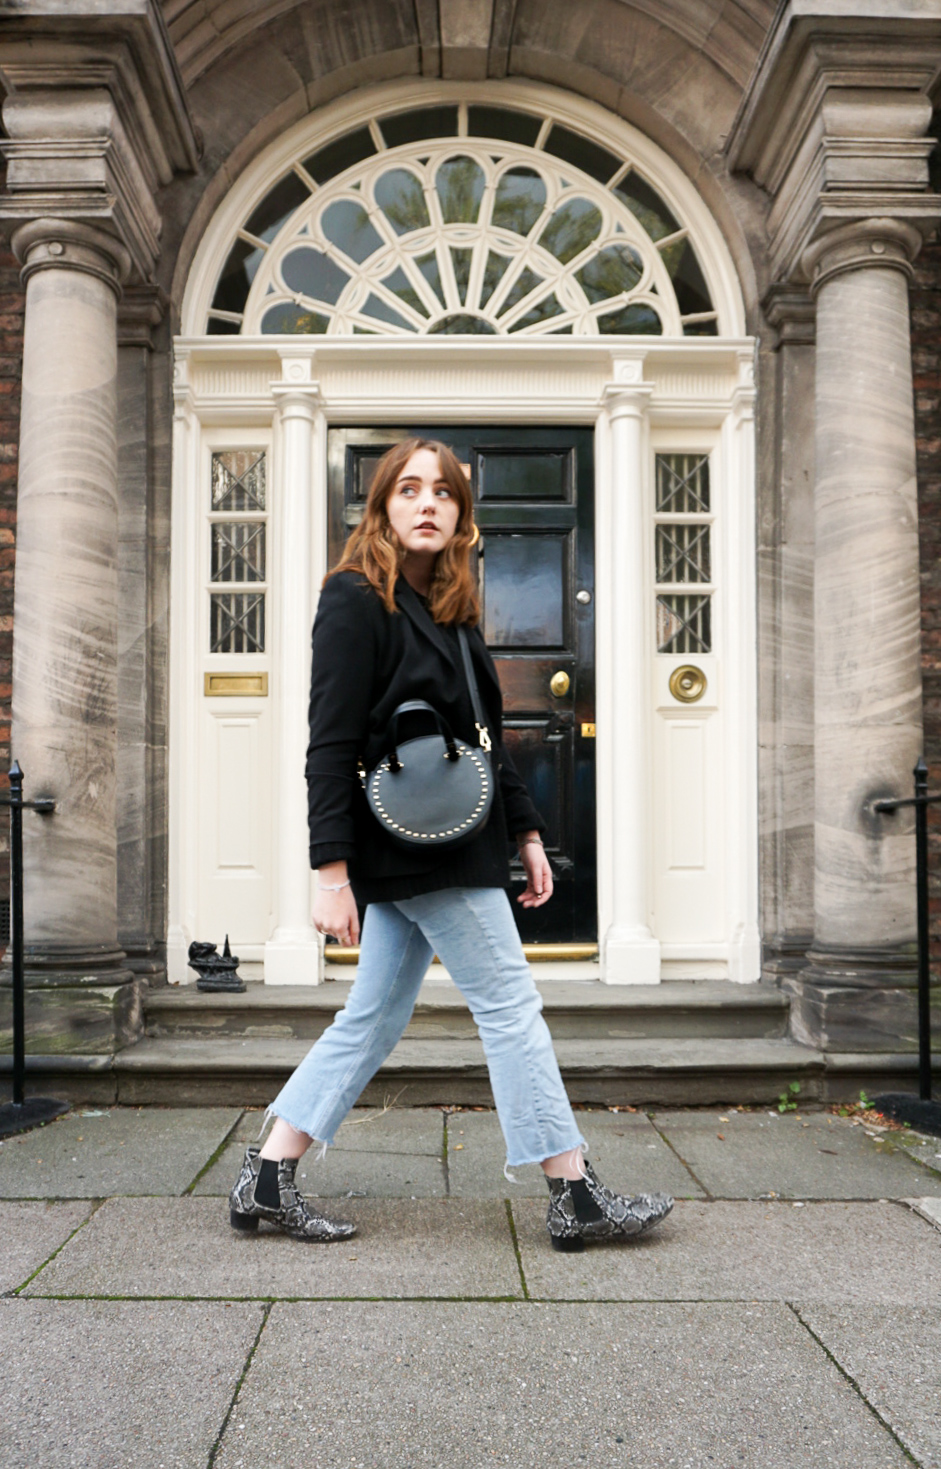 autumn 2018 street style of uk fashion blogger